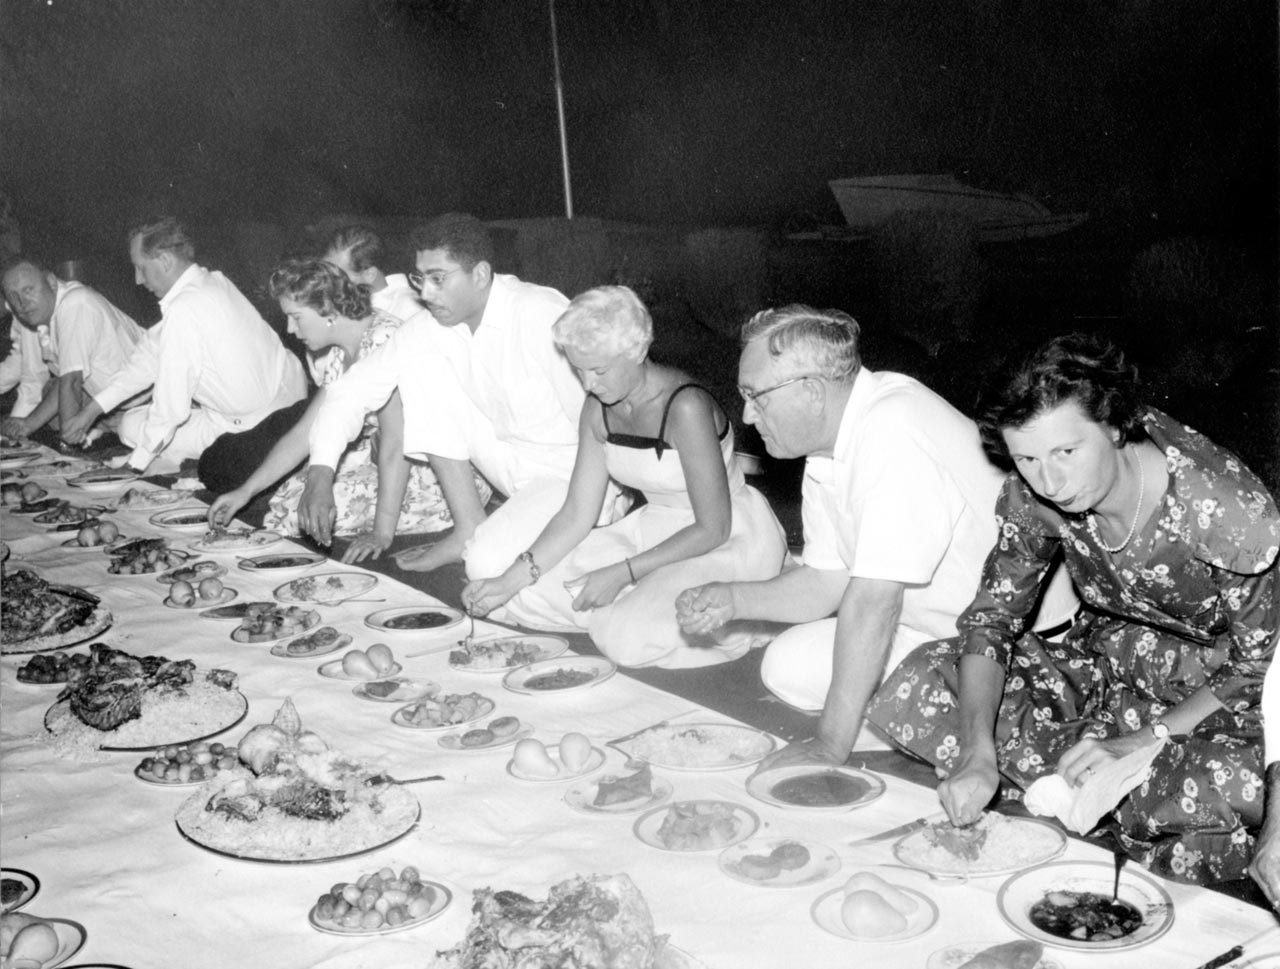 Eating a traditional Bahraini meal on the floor, 1959.